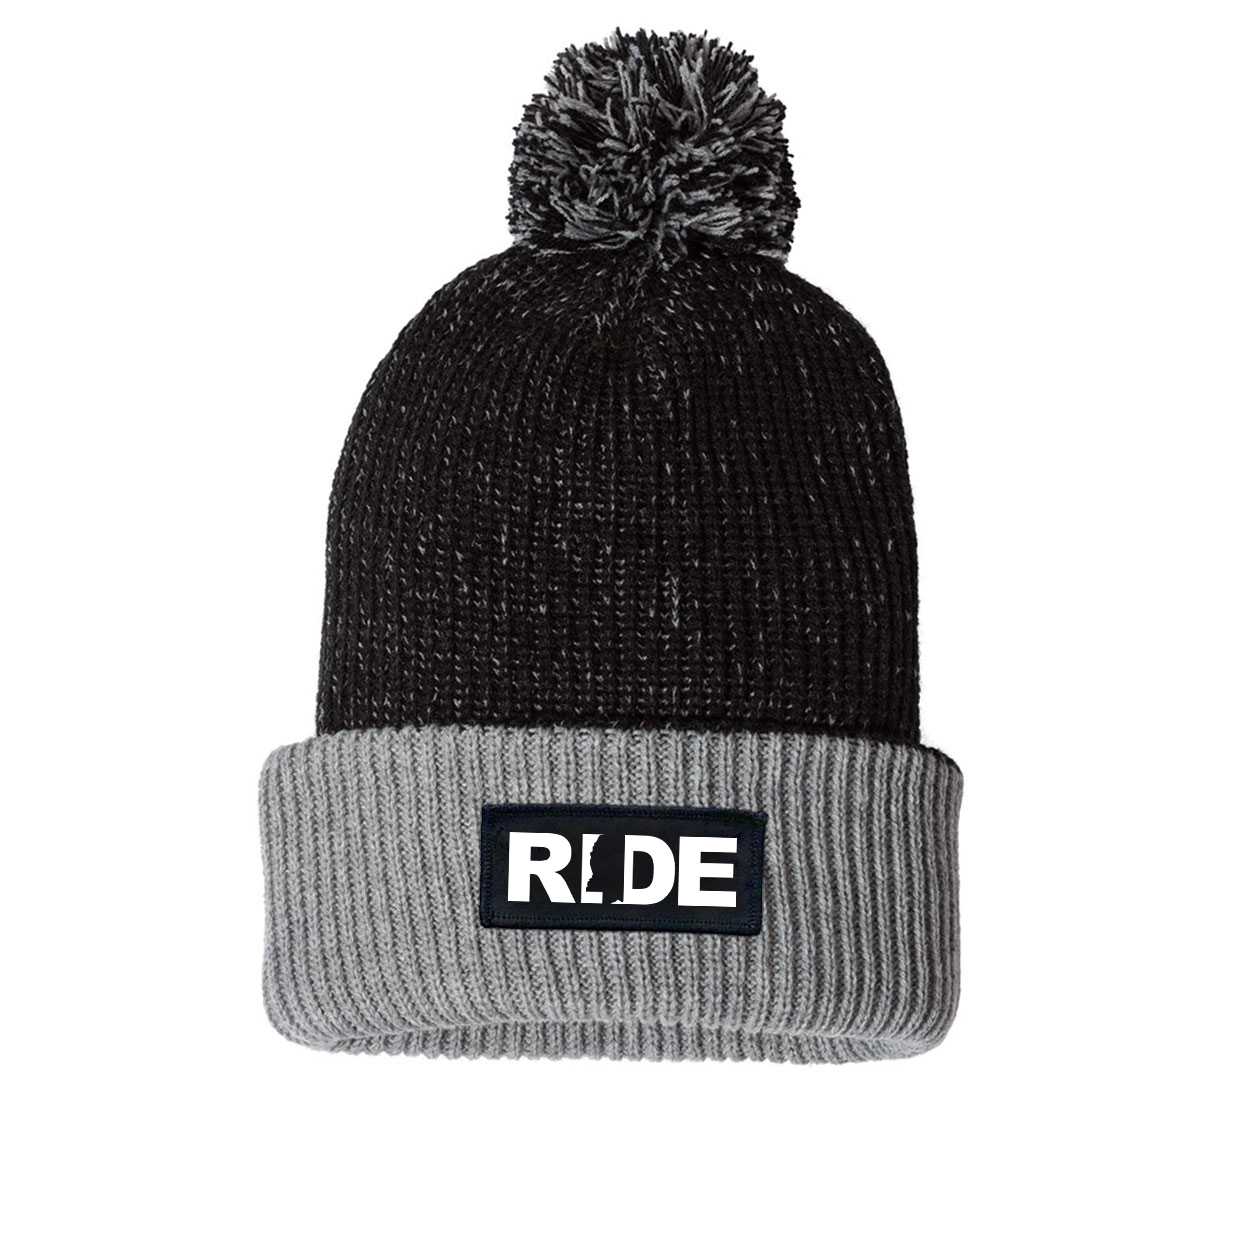 Ride Mississippi Night Out Woven Patch Roll Up Pom Knit Beanie Black/Gray (White Logo)